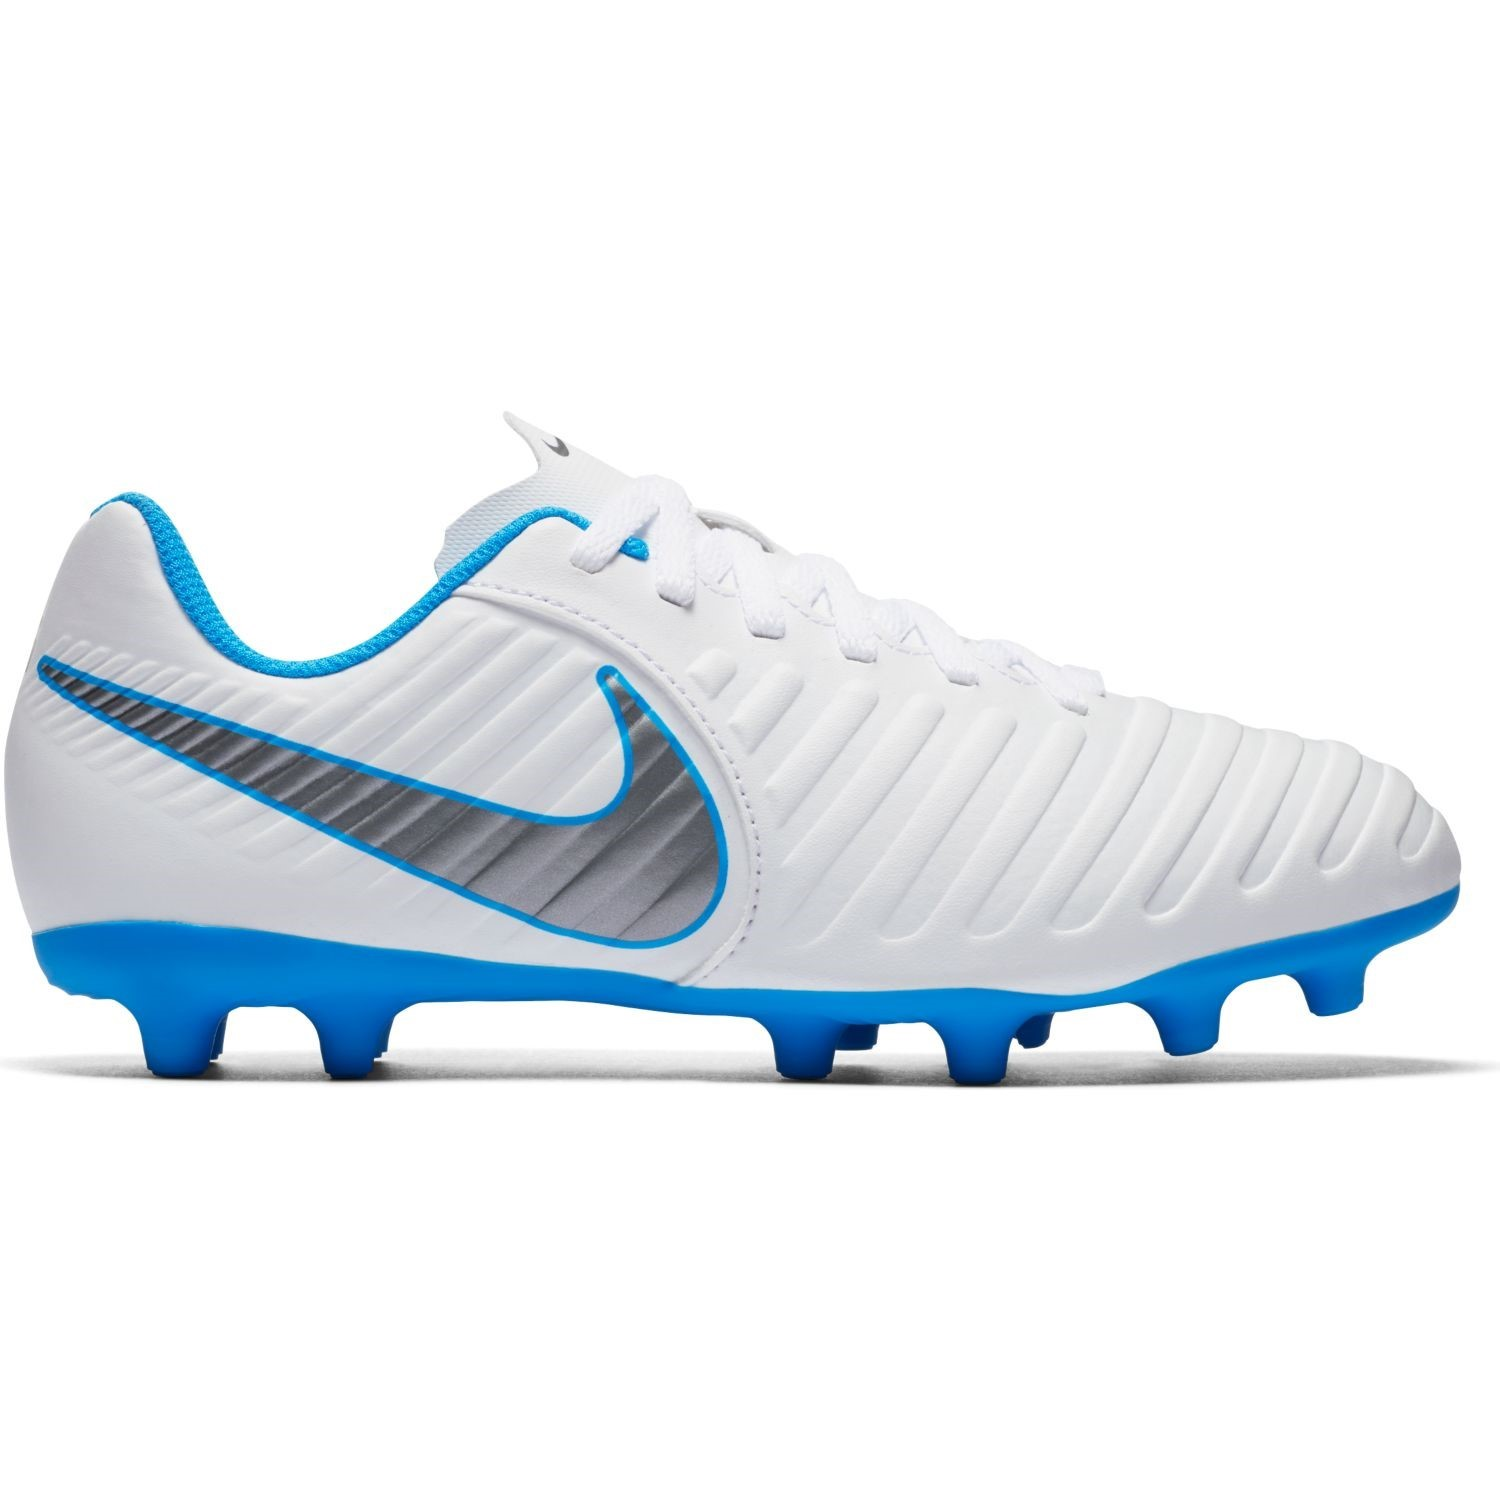 online store f292c abe6d Nike Jr Tiempo Legend VII Club FG - Kids Football Boots - White Metallic